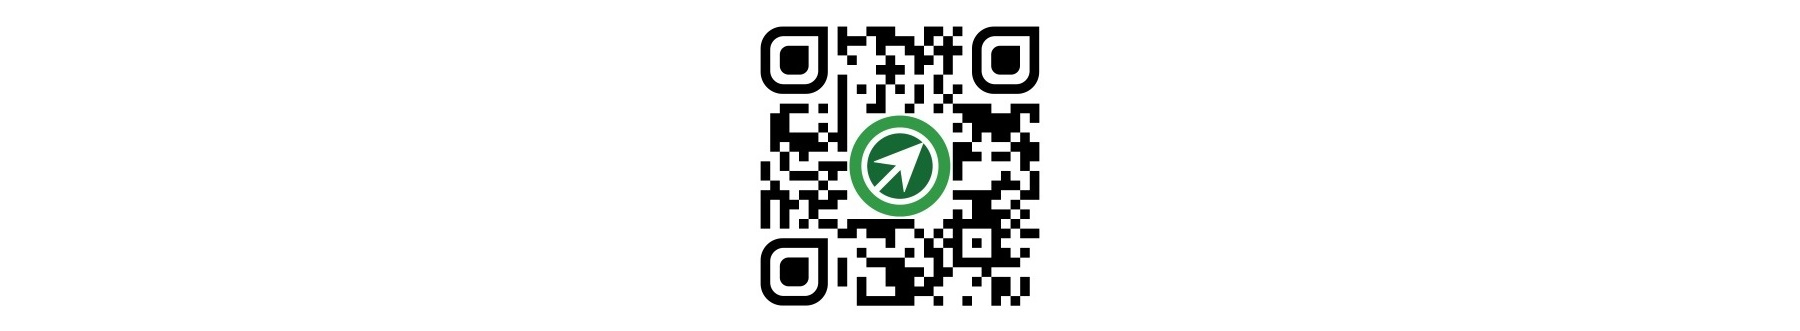 https://campaign-image.com/zohocampaigns/479159000000520004_zc_v141_otds_qrcode_for_newsletter2.jpg